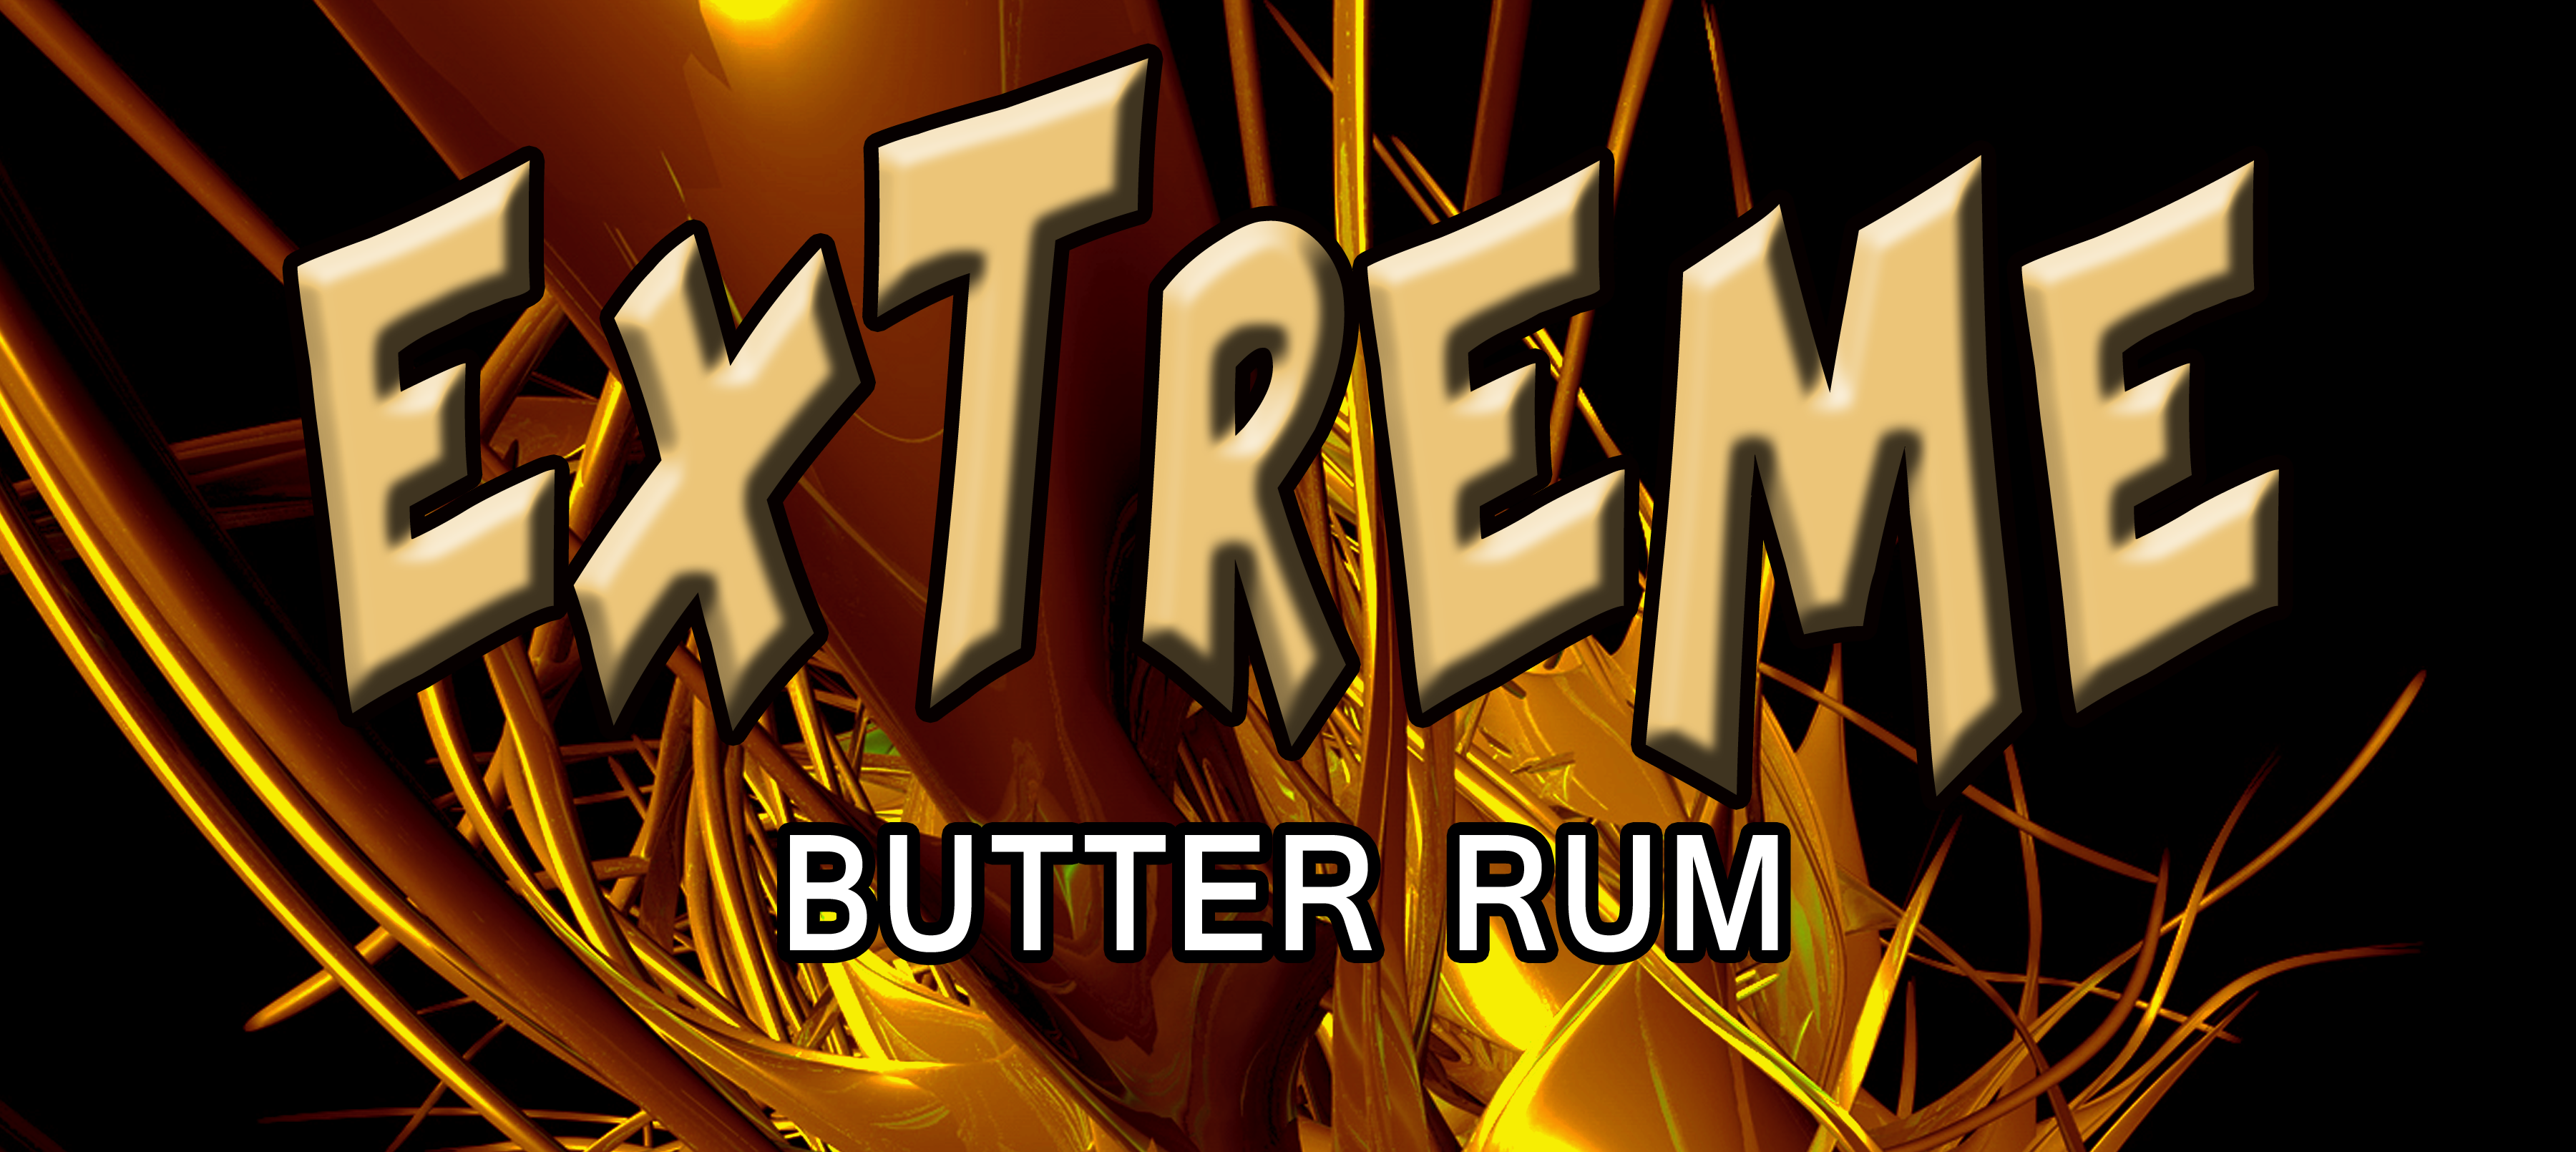 Extreme Butter Rum